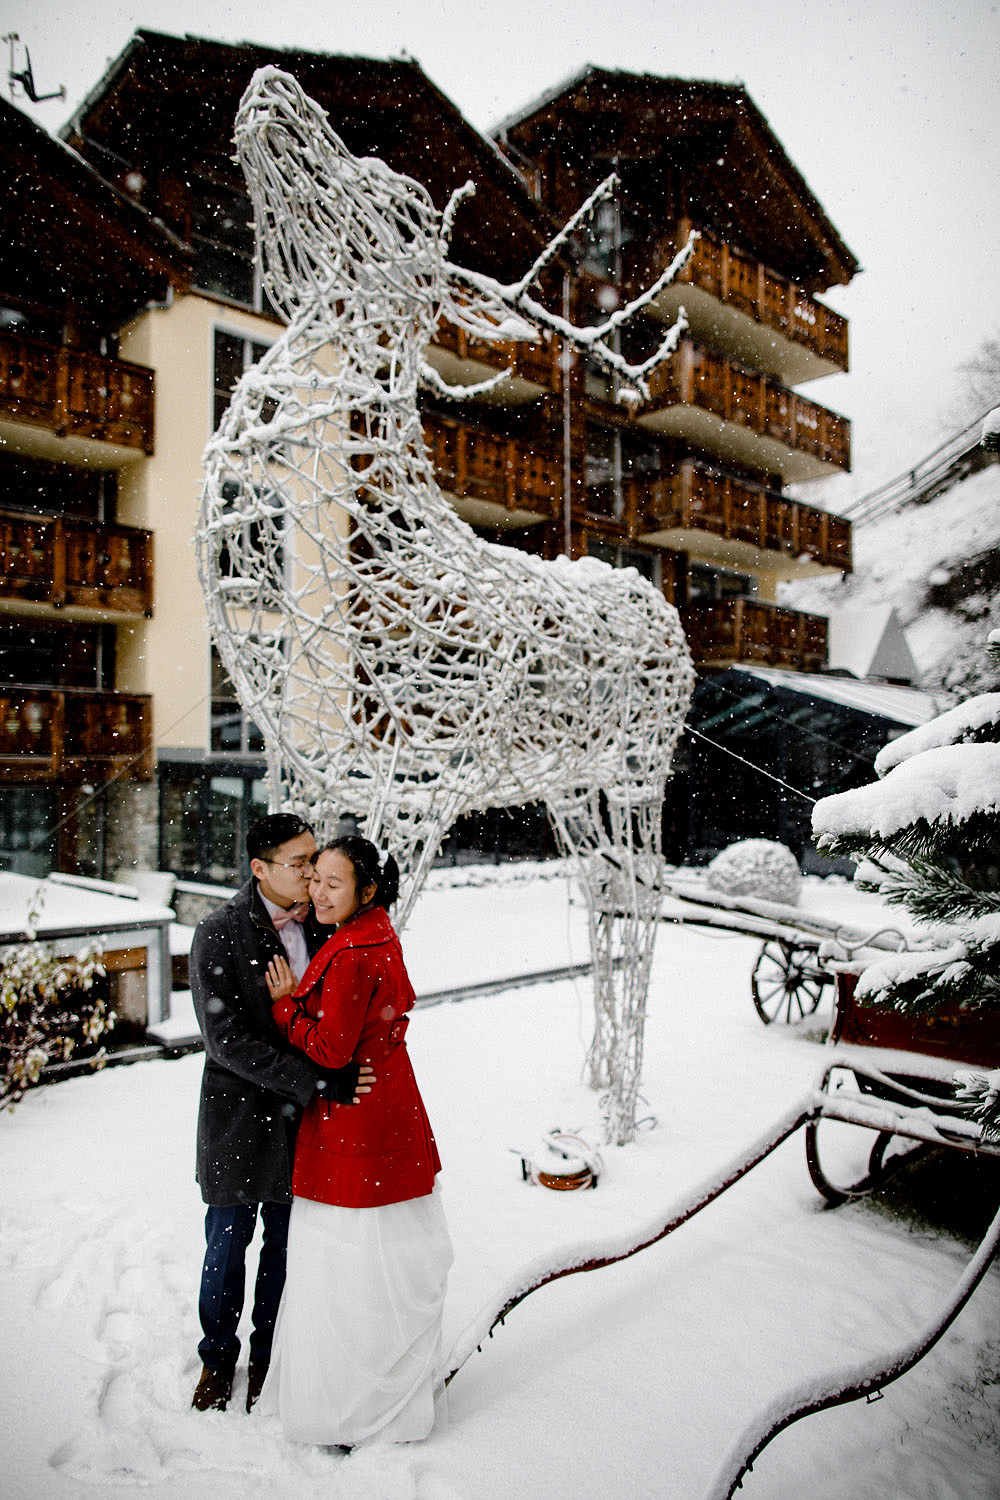 Engagement Session in the snow in Zermatt Switzerland :: Luxury wedding photography - 10